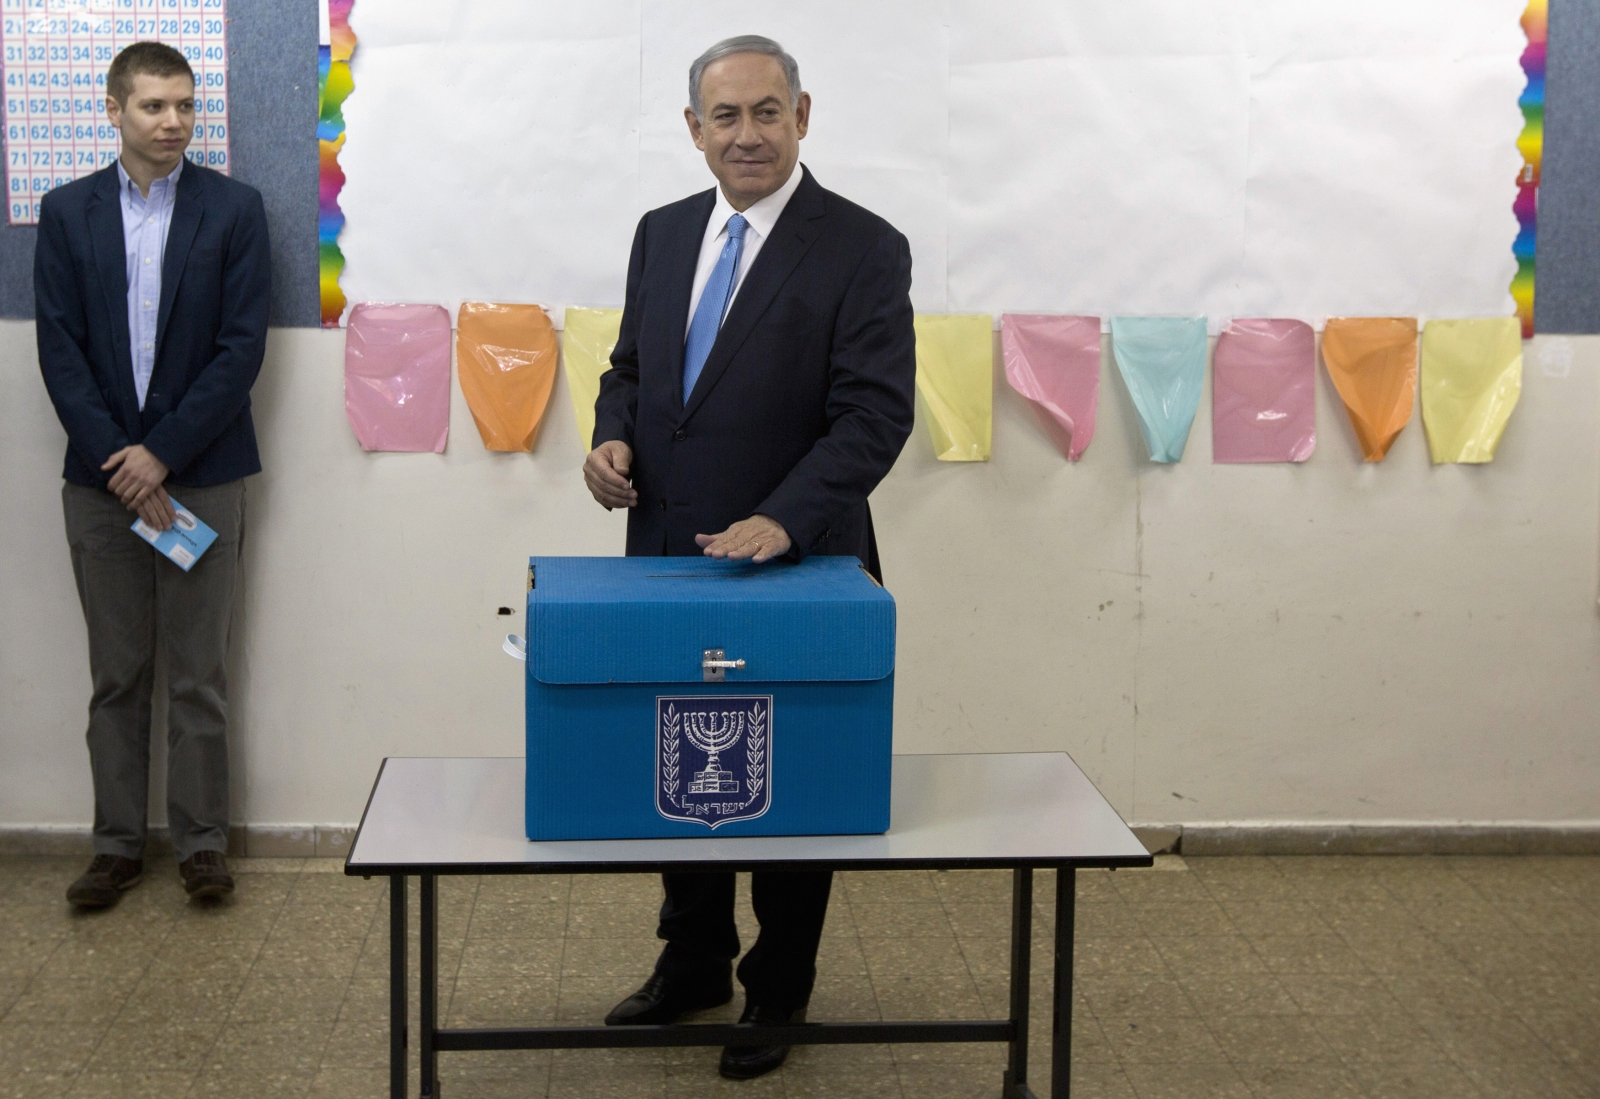 Benjamin Netanyahu casting his vote